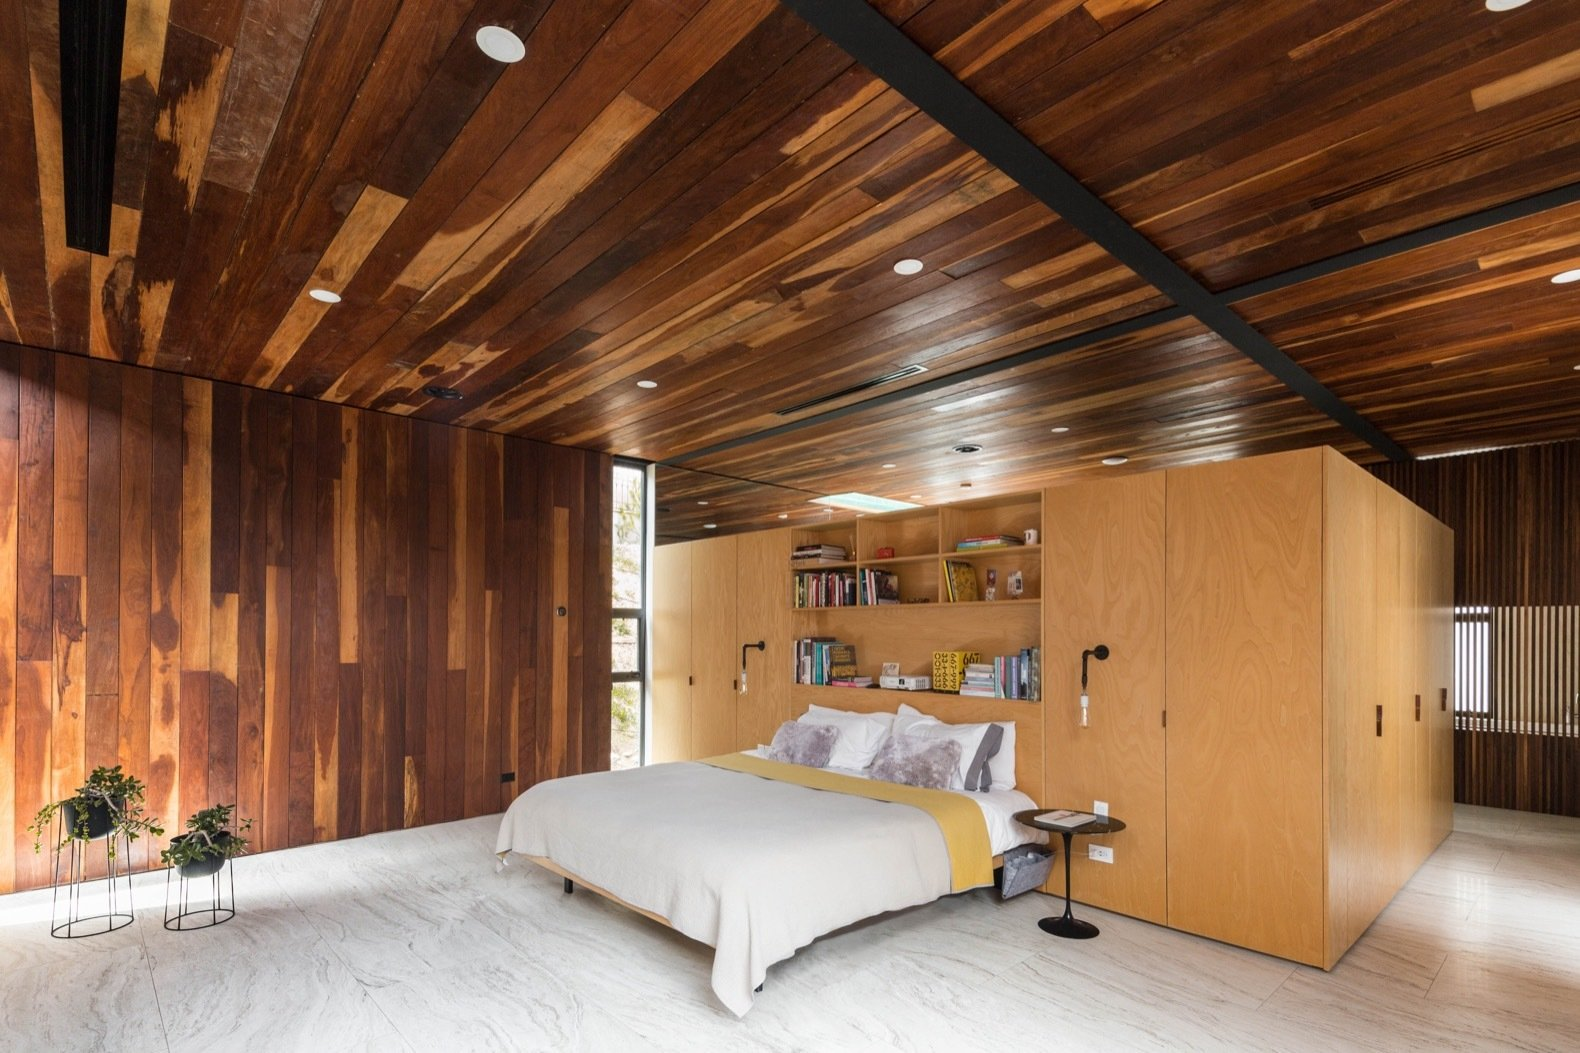 Bedroom, Porcelain Tile, Wall, Bed, Wardrobe, Recessed, Storage, and Night Stands A look at the master bedroom, which unlike the other rooms in the home, features Ipe wood for both the ceiling and walls.    Best Bedroom Wardrobe Bed Porcelain Tile Wall Photos from A Modern Mexican Home Rises With Vertical Timber Cladding